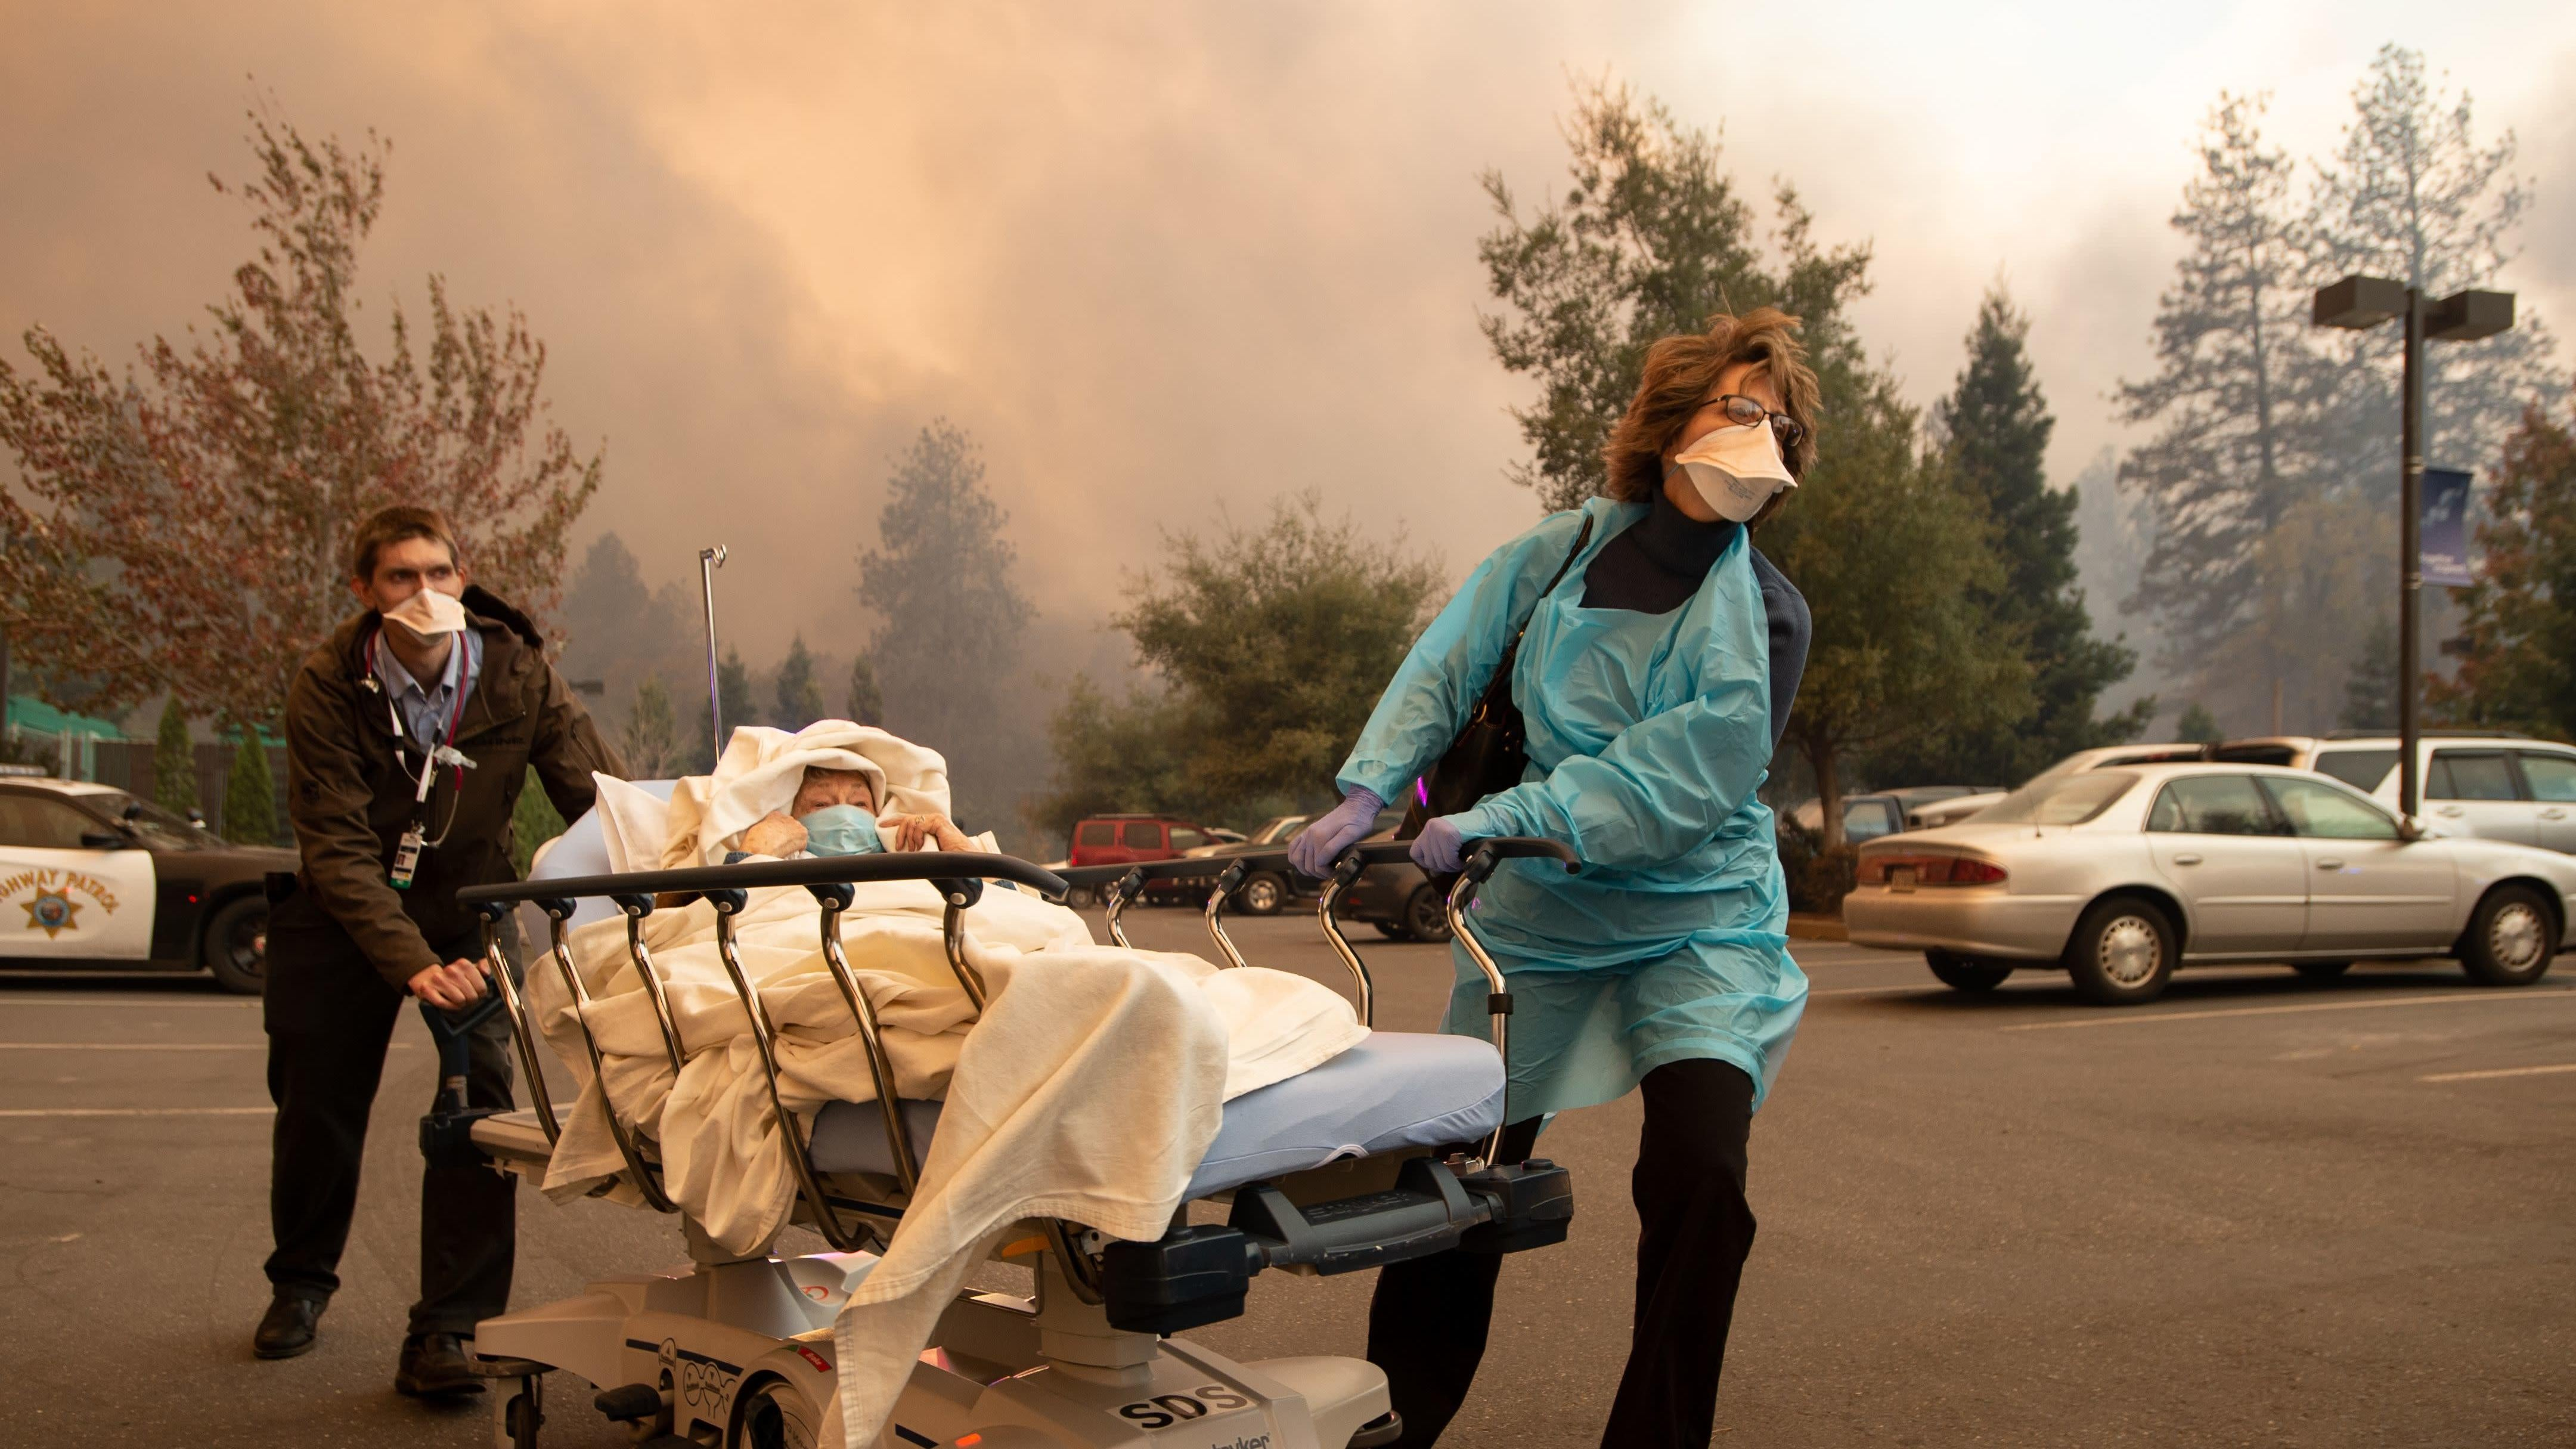 Climate Change Is Already Making Us Sick